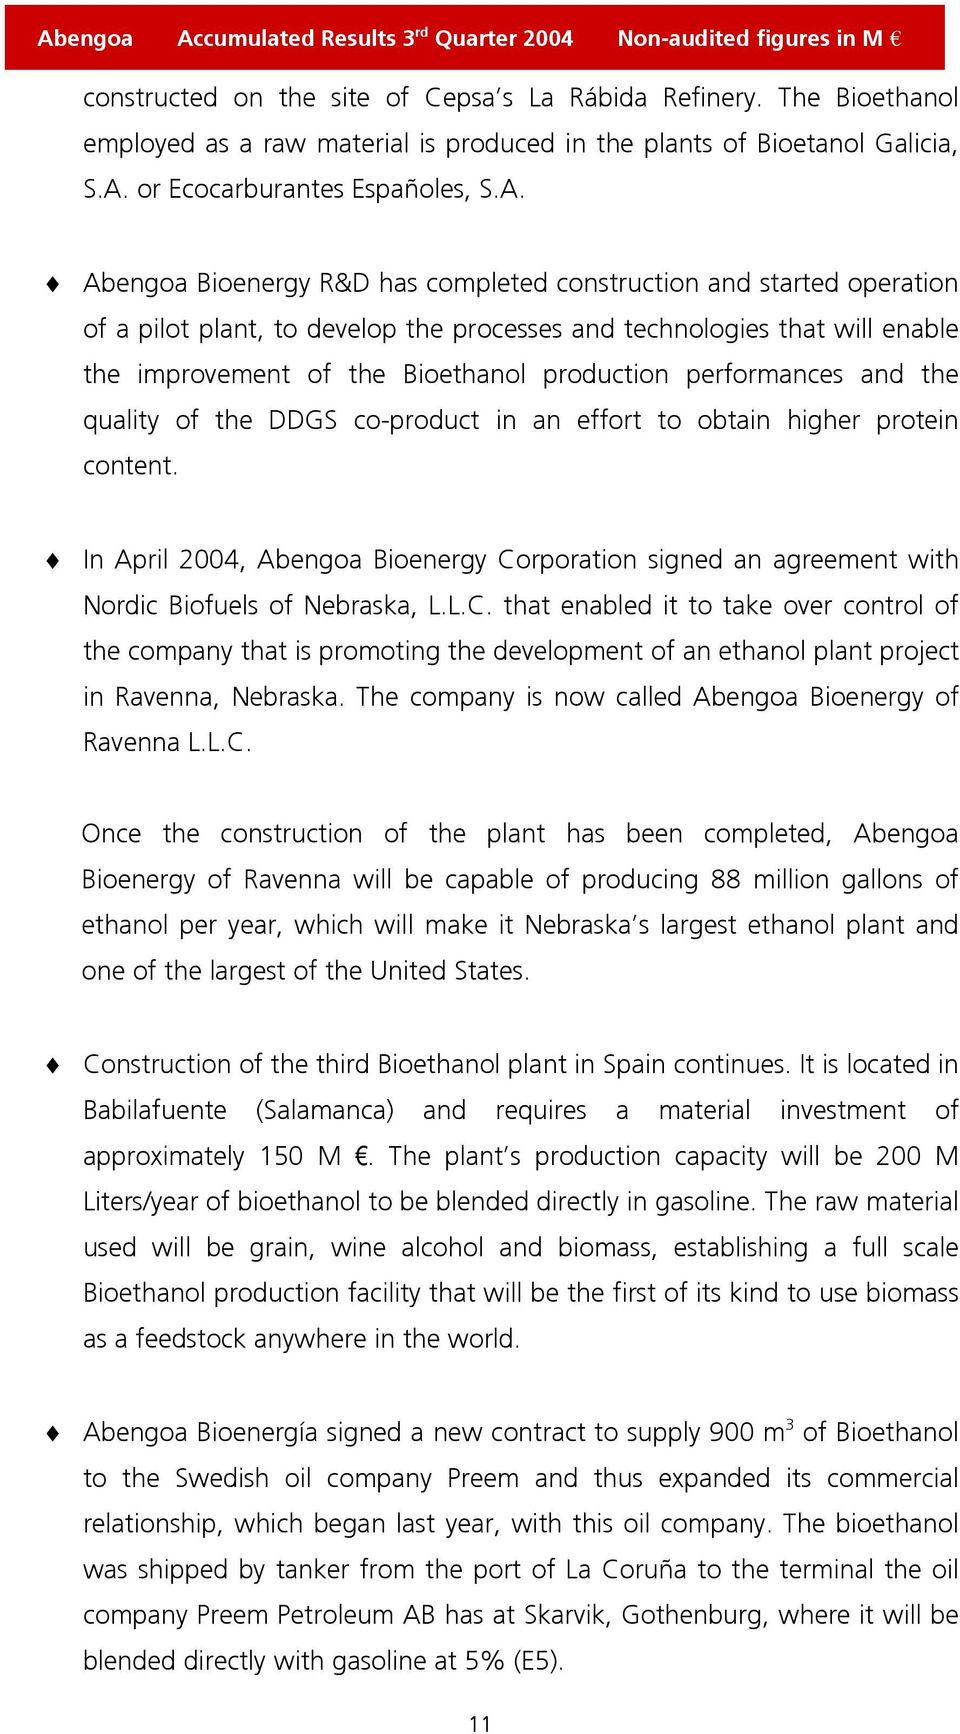 Abengoa Bioenergy R&D has completed construction and started operation of a pilot plant, to develop the processes and technologies that will enable the improvement of the Bioethanol production